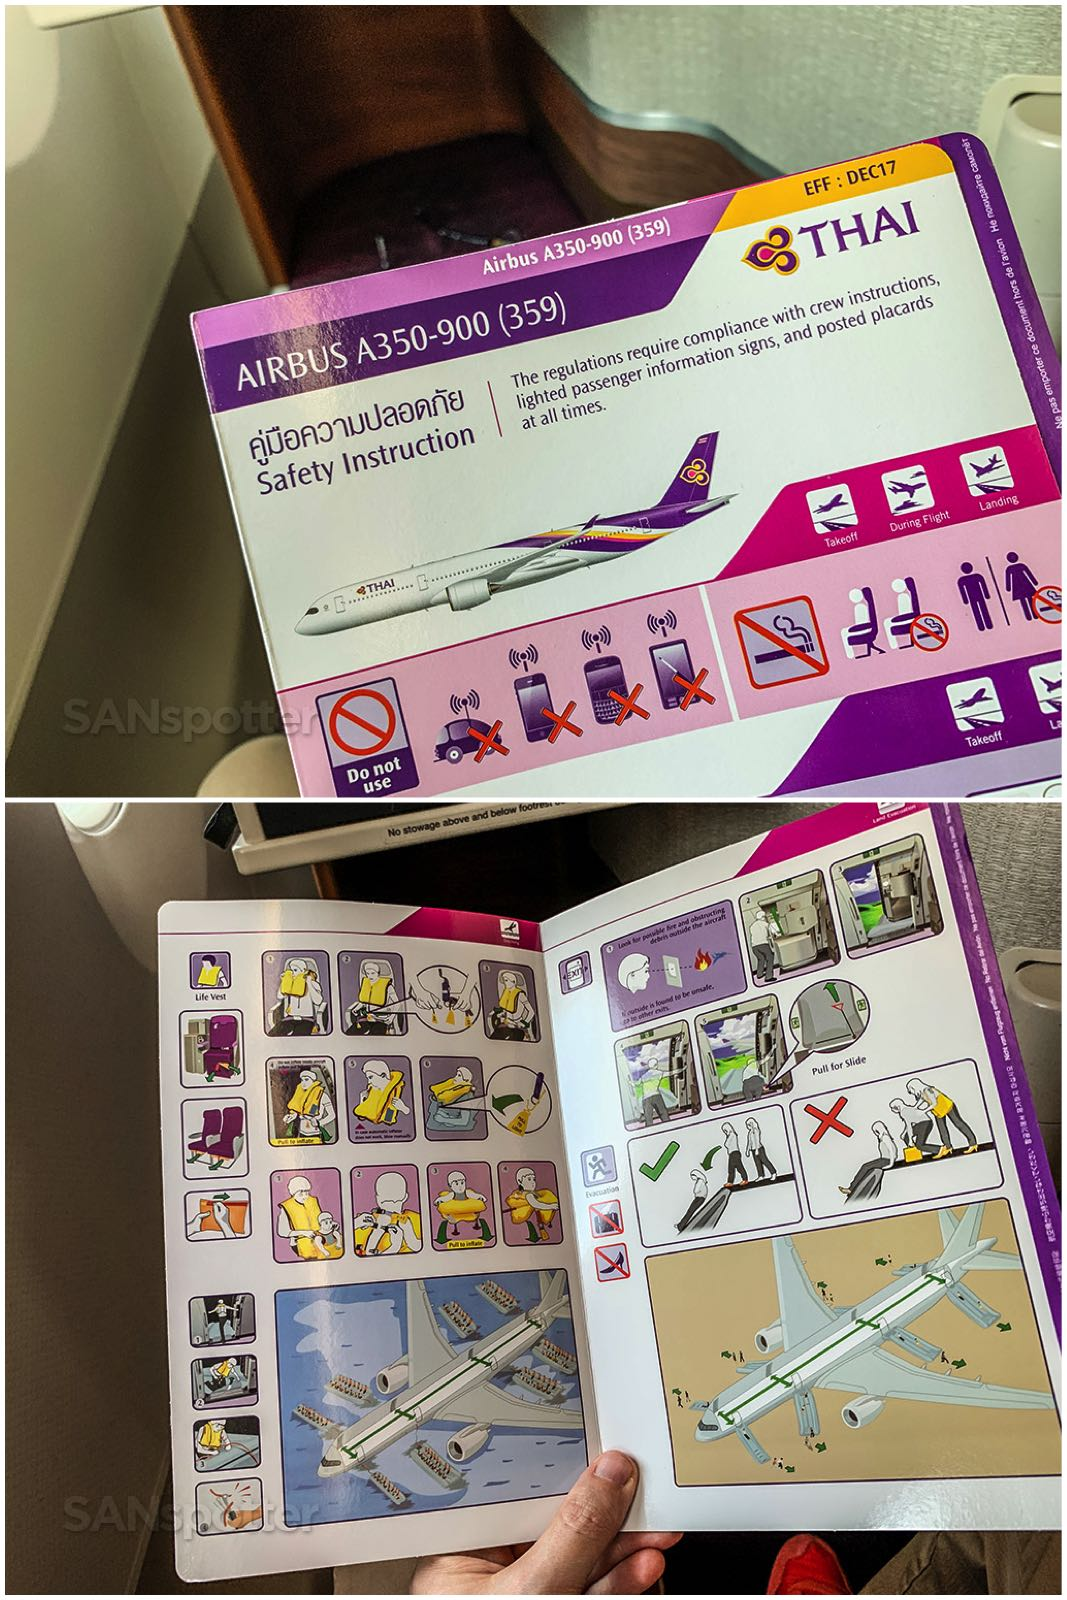 Thai airways safety